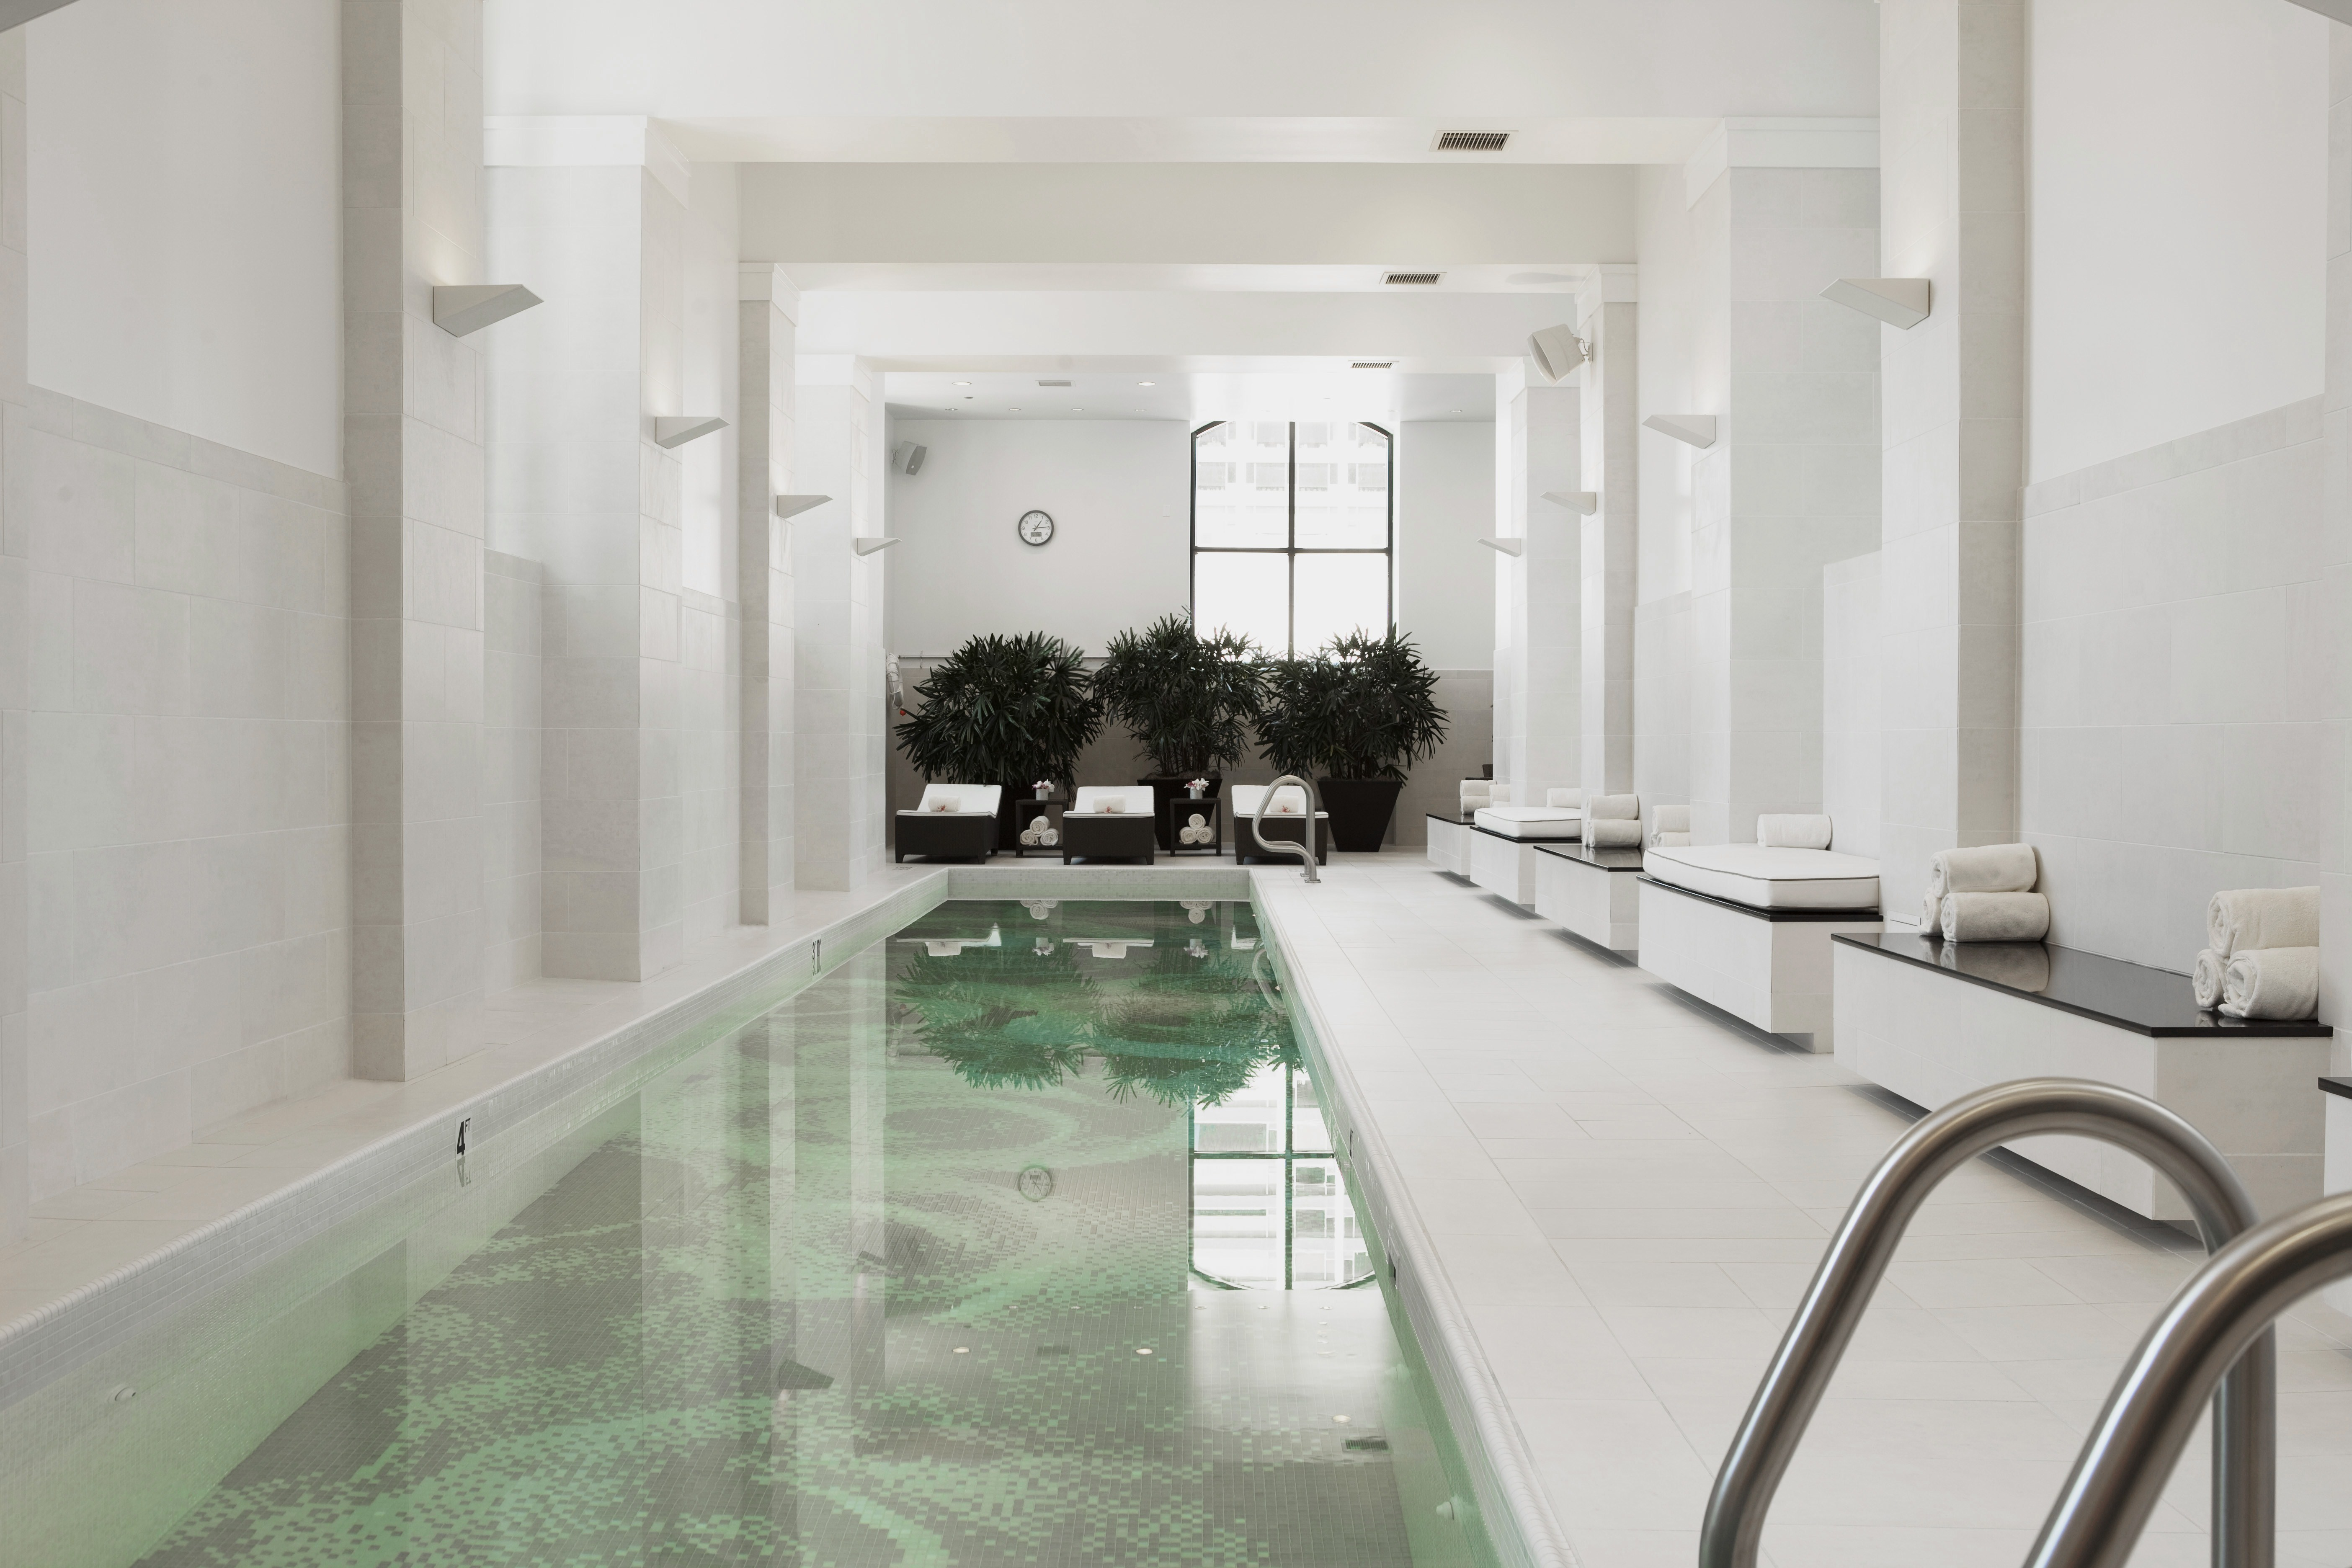 Indoor Pool at the Elysian Spa & Health Club